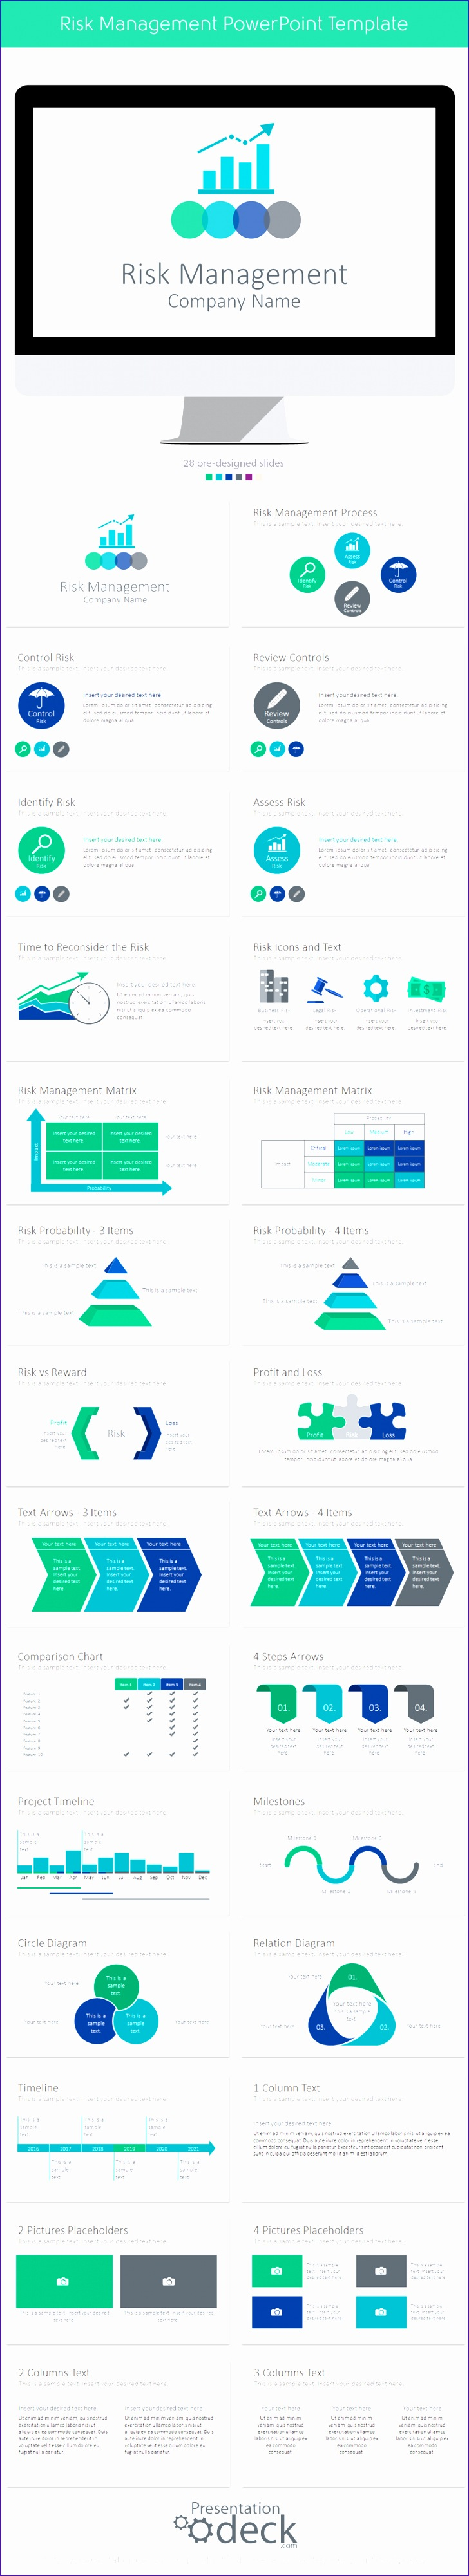 Raci Matrix Template Excel Download Dqveg New Project Status Powerpoint Presentation Template